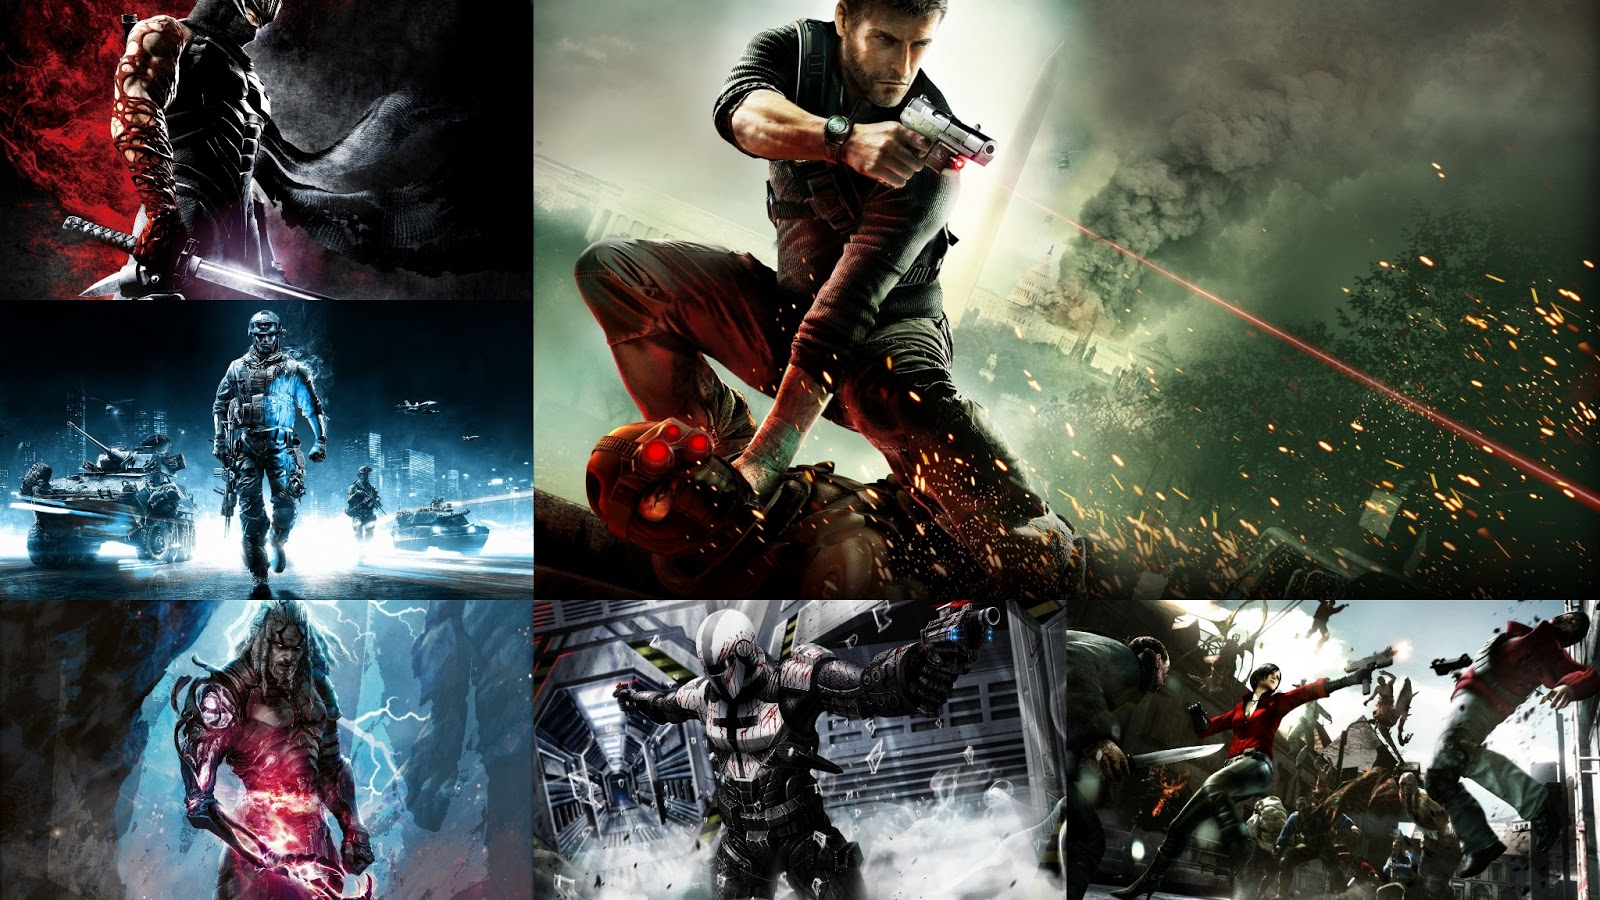 Download Beautiful HD Game Wallpapers Pack for Windows